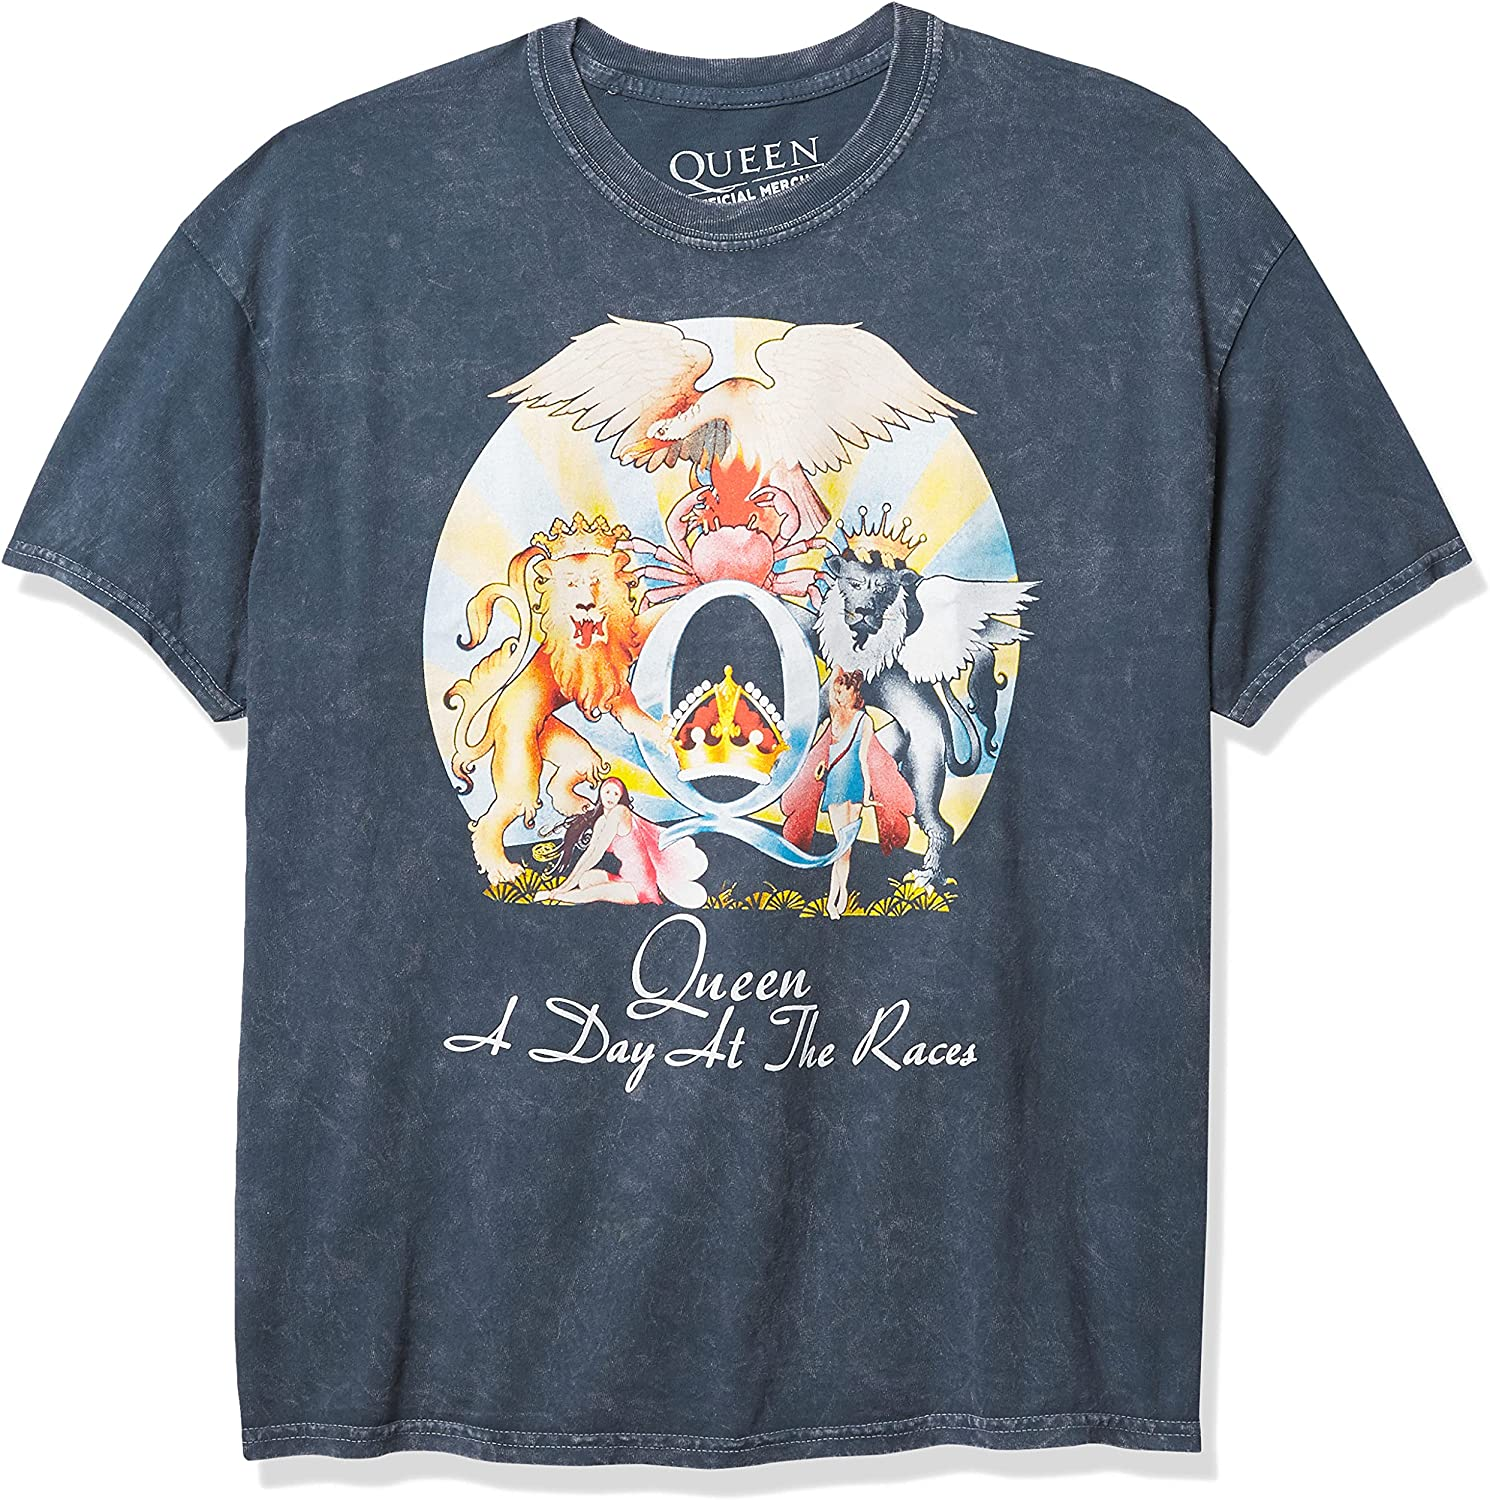 Ranking TOP2 Queen Girls Day at Boyfriend Fixed price for sale Tee The Races-Juniors